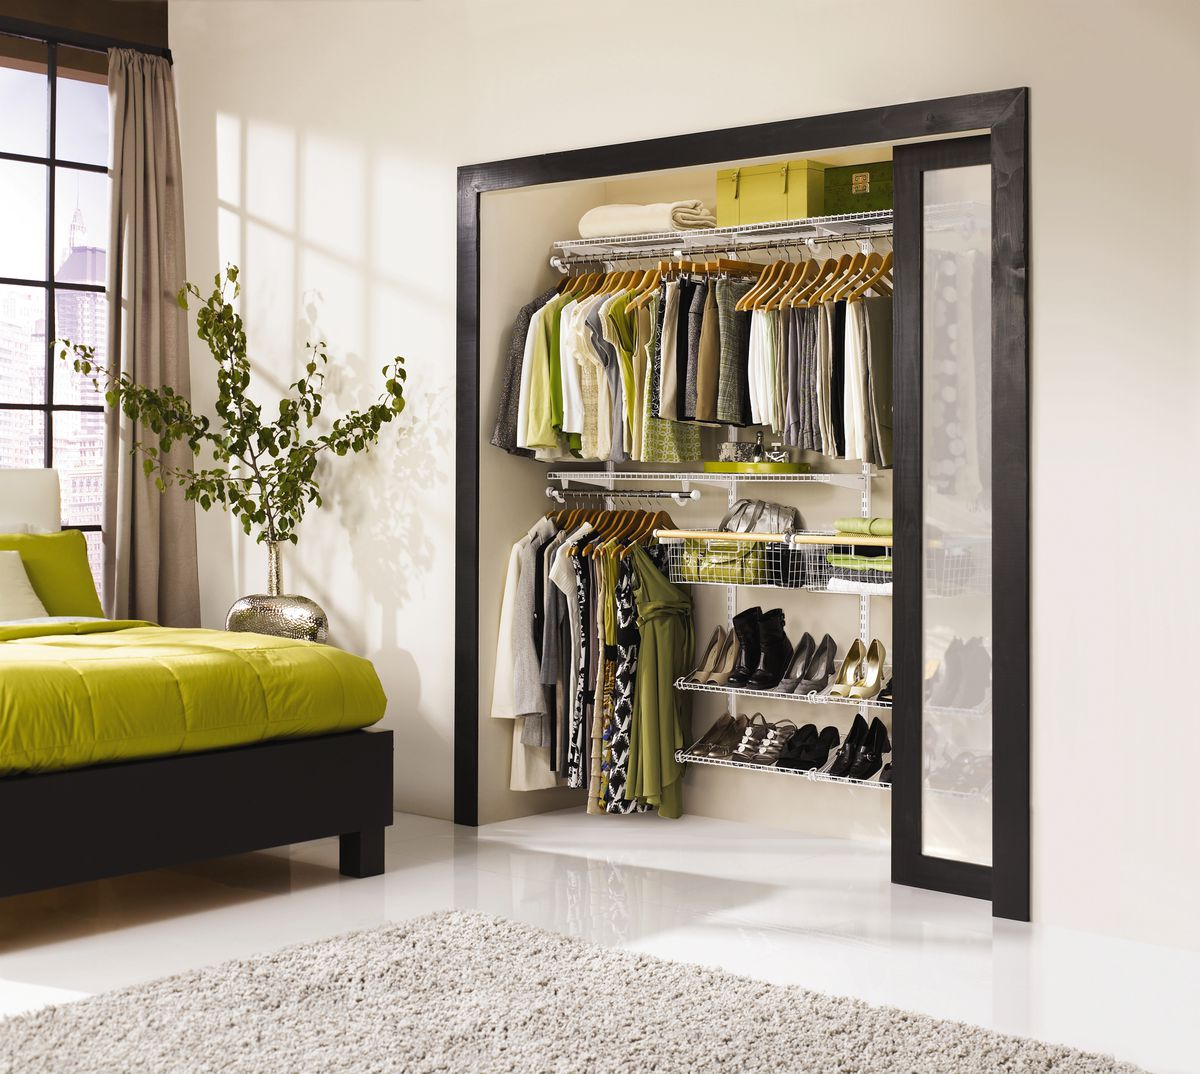 Out of The Box System Options when planning to redo your bedroom closet